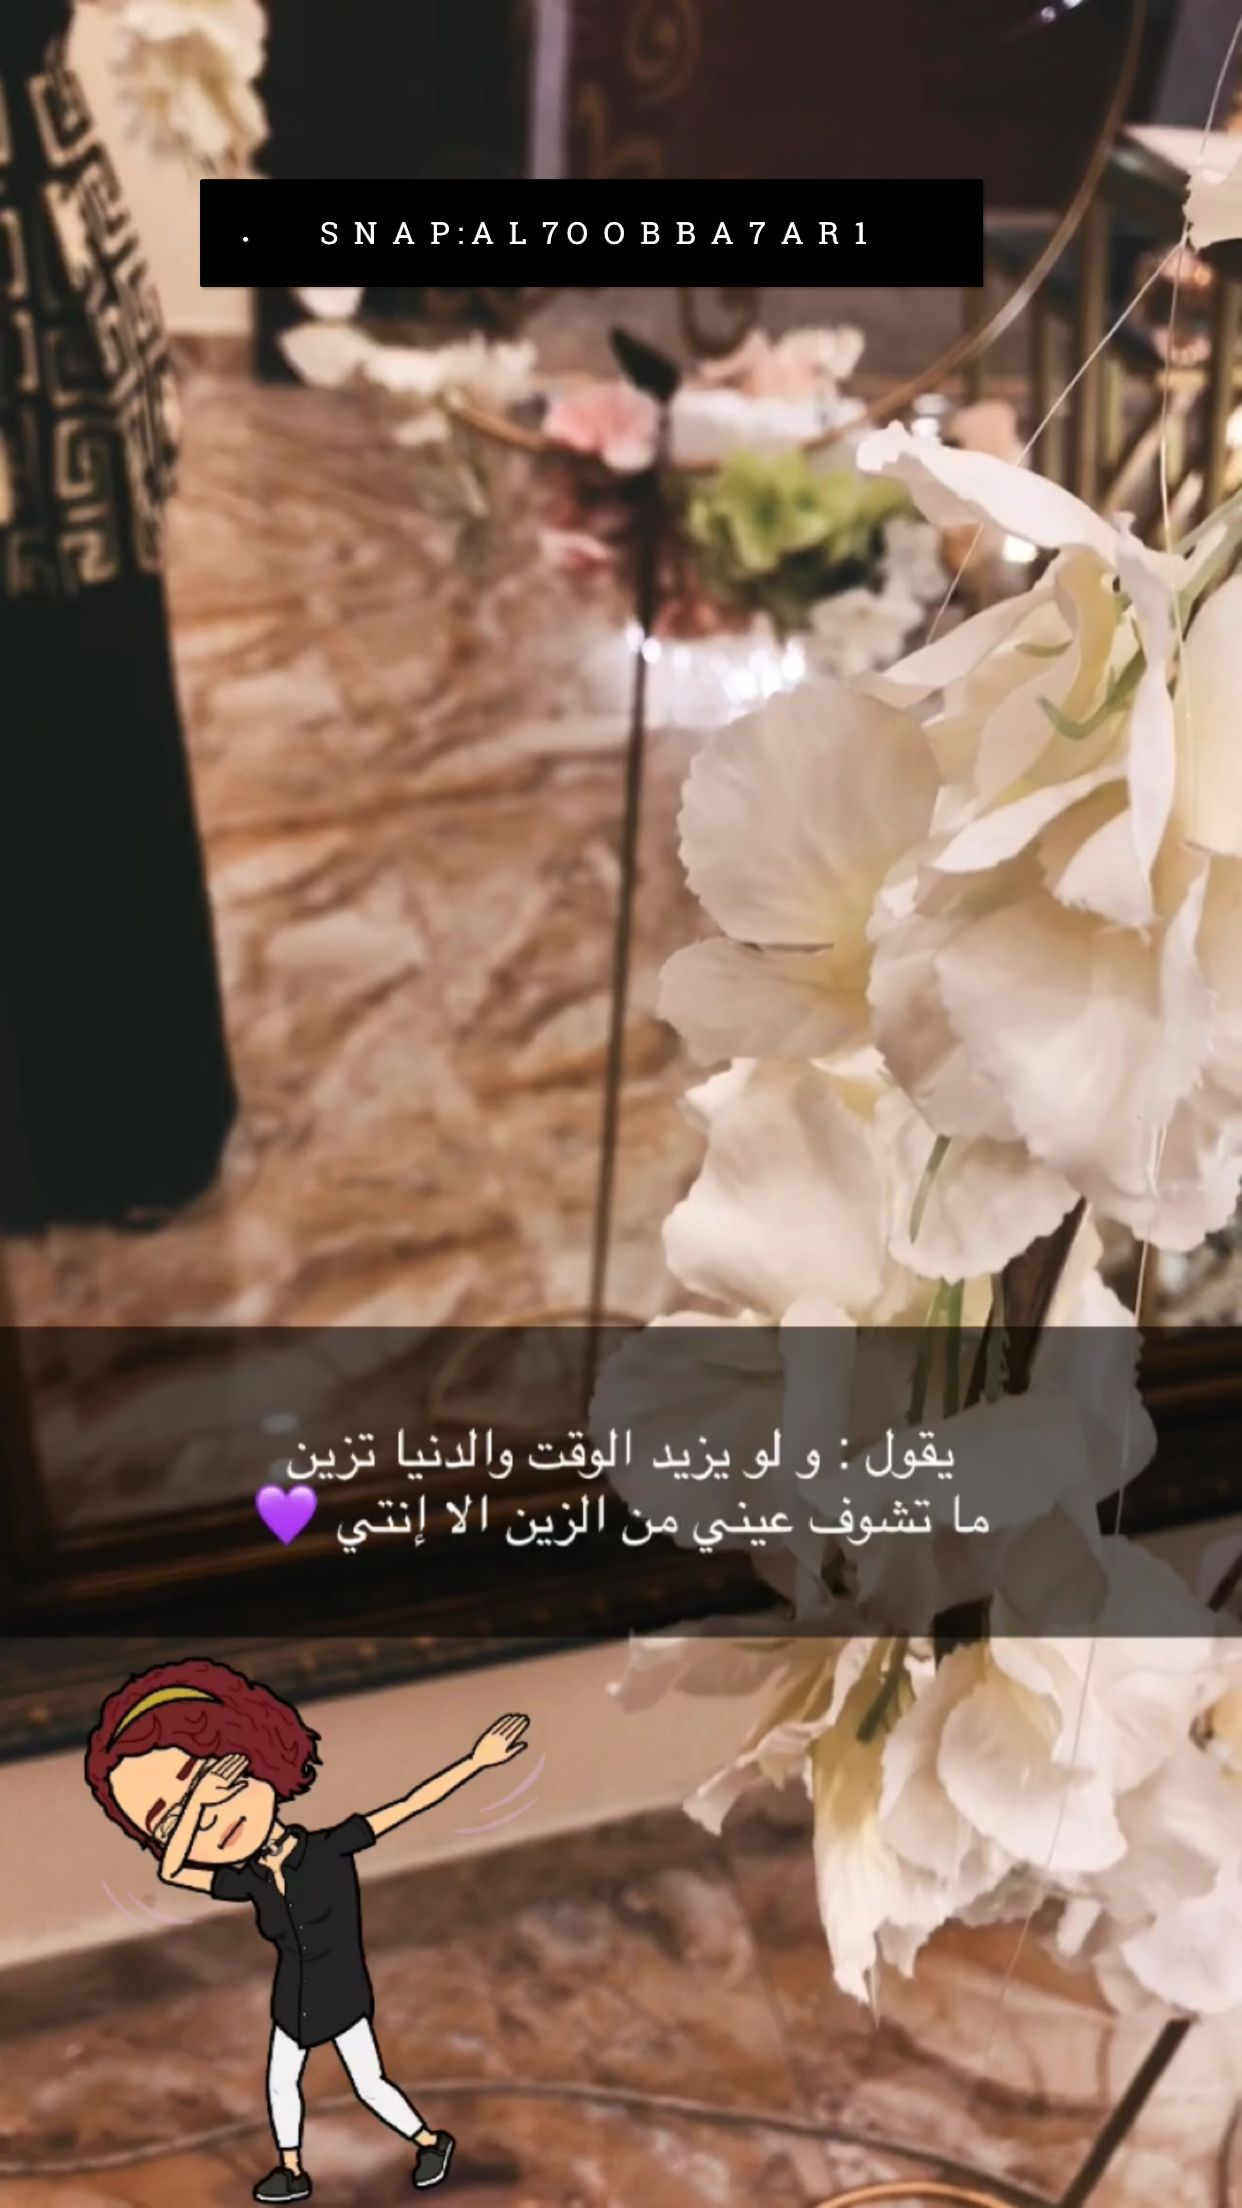 Pin By Saif Ali On منشوراتي المحفوظة In 2021 Iphone Background Snapchat Background